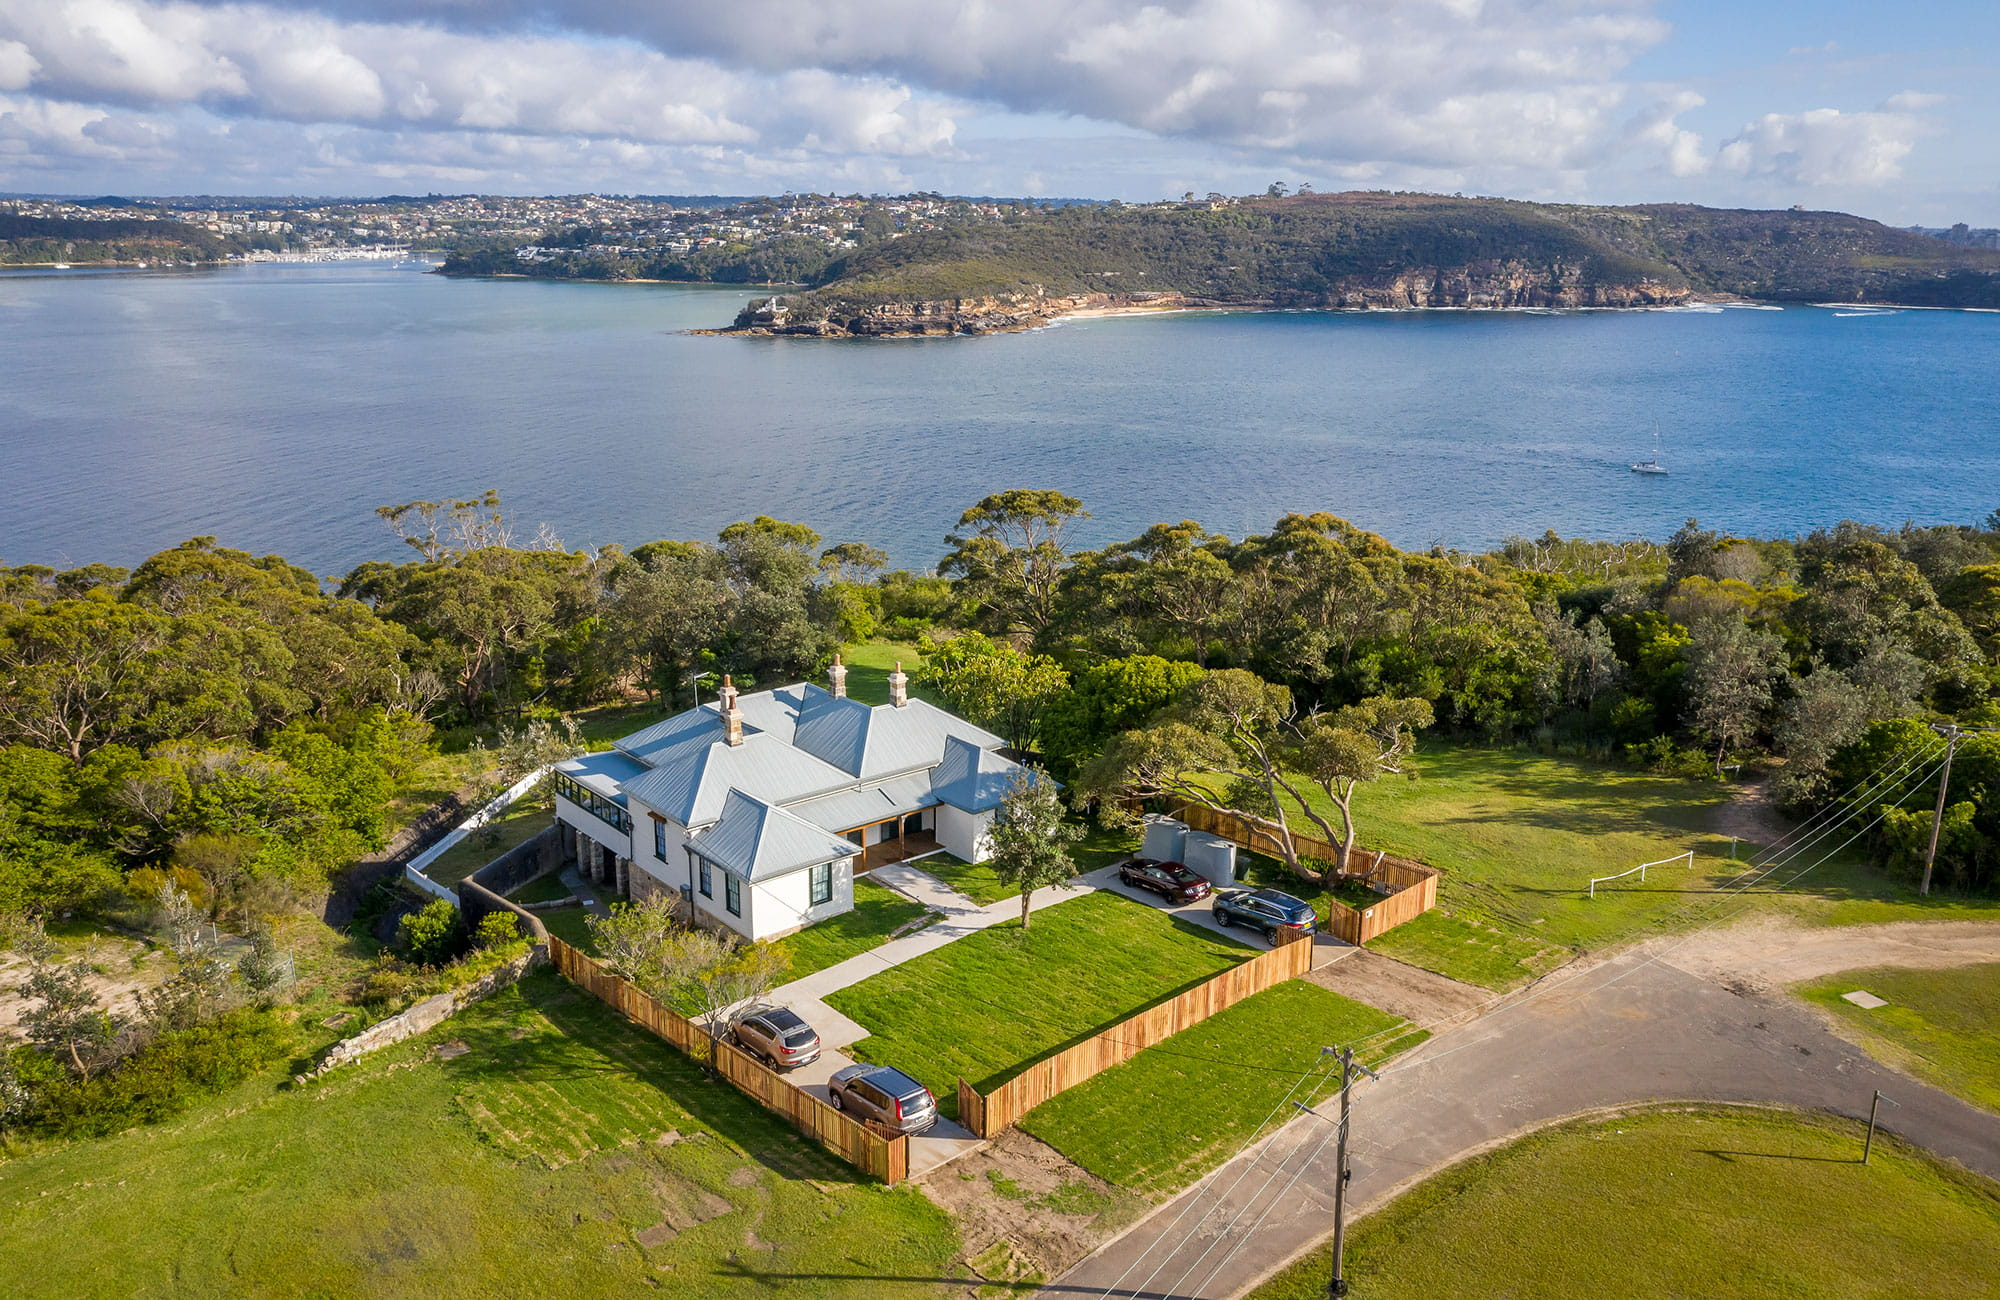 Aerial view of Middle Head Officers Quarters with Sydney Harbour in the background. Photo: John Spencer/DPIE